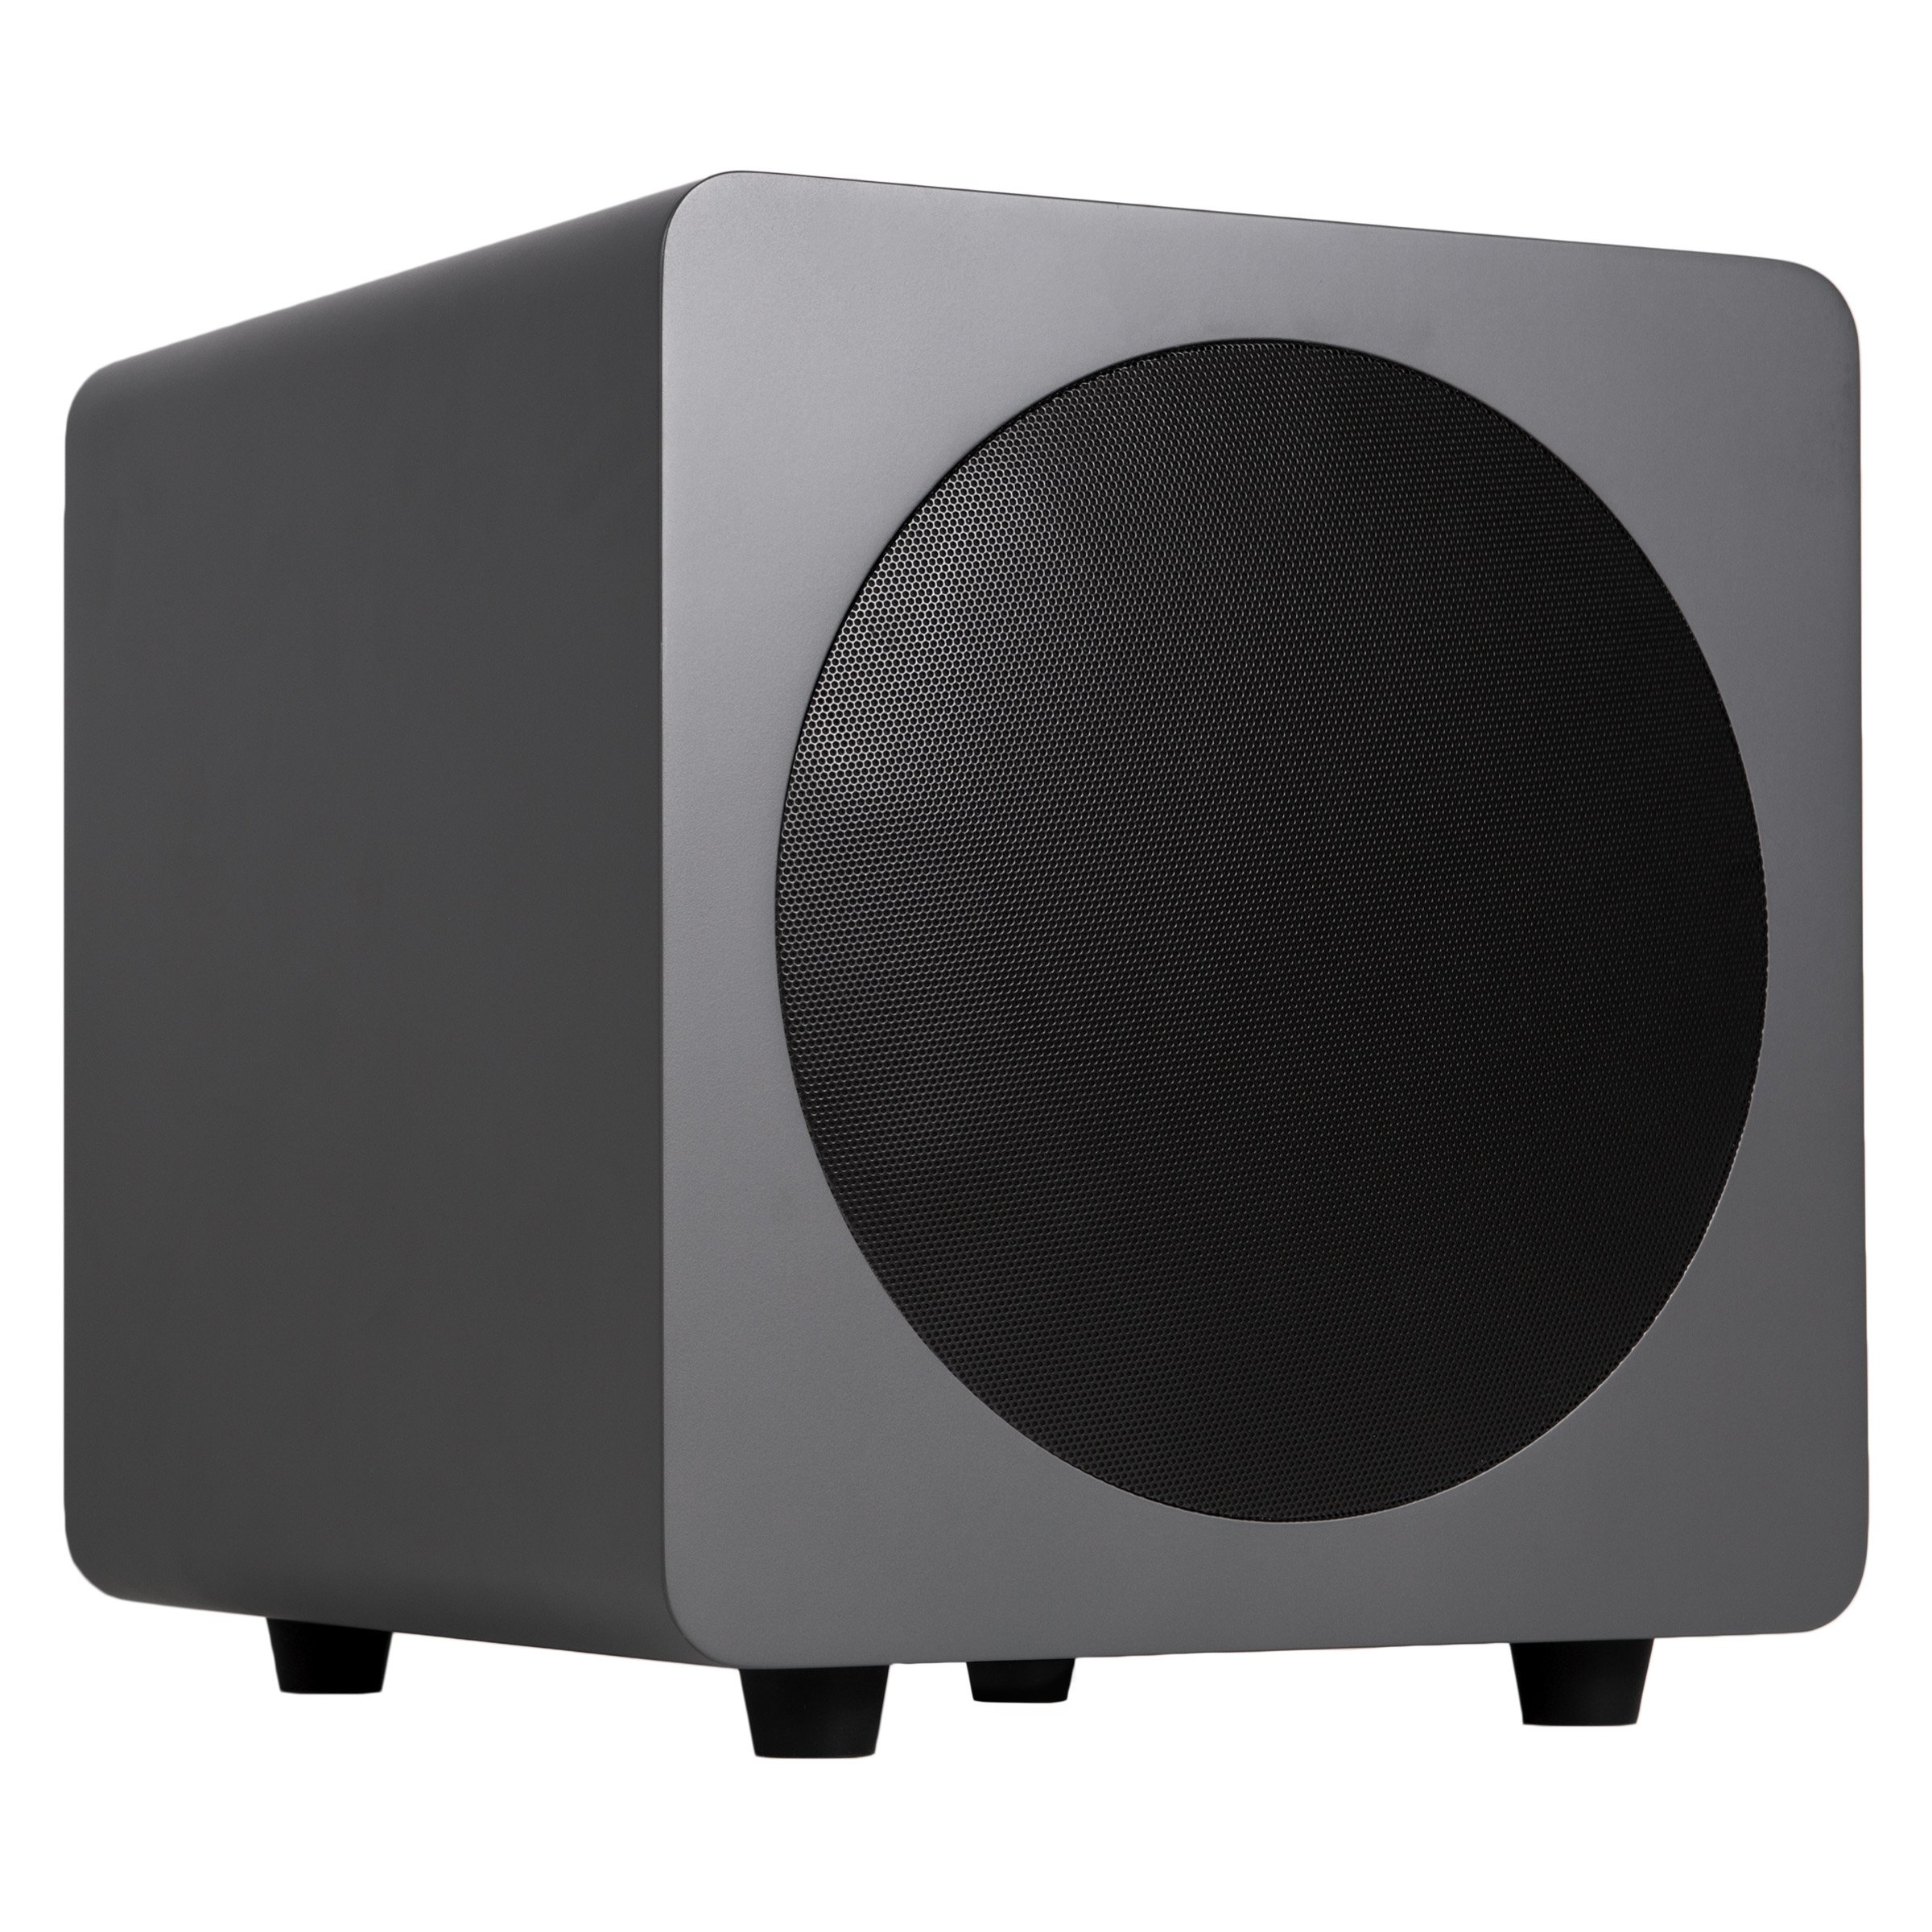 """Kanto sub8 Powered Subwoofer – 8"""" Paper Cone Driver — Powerful Bass Extension – Matte Grey"""